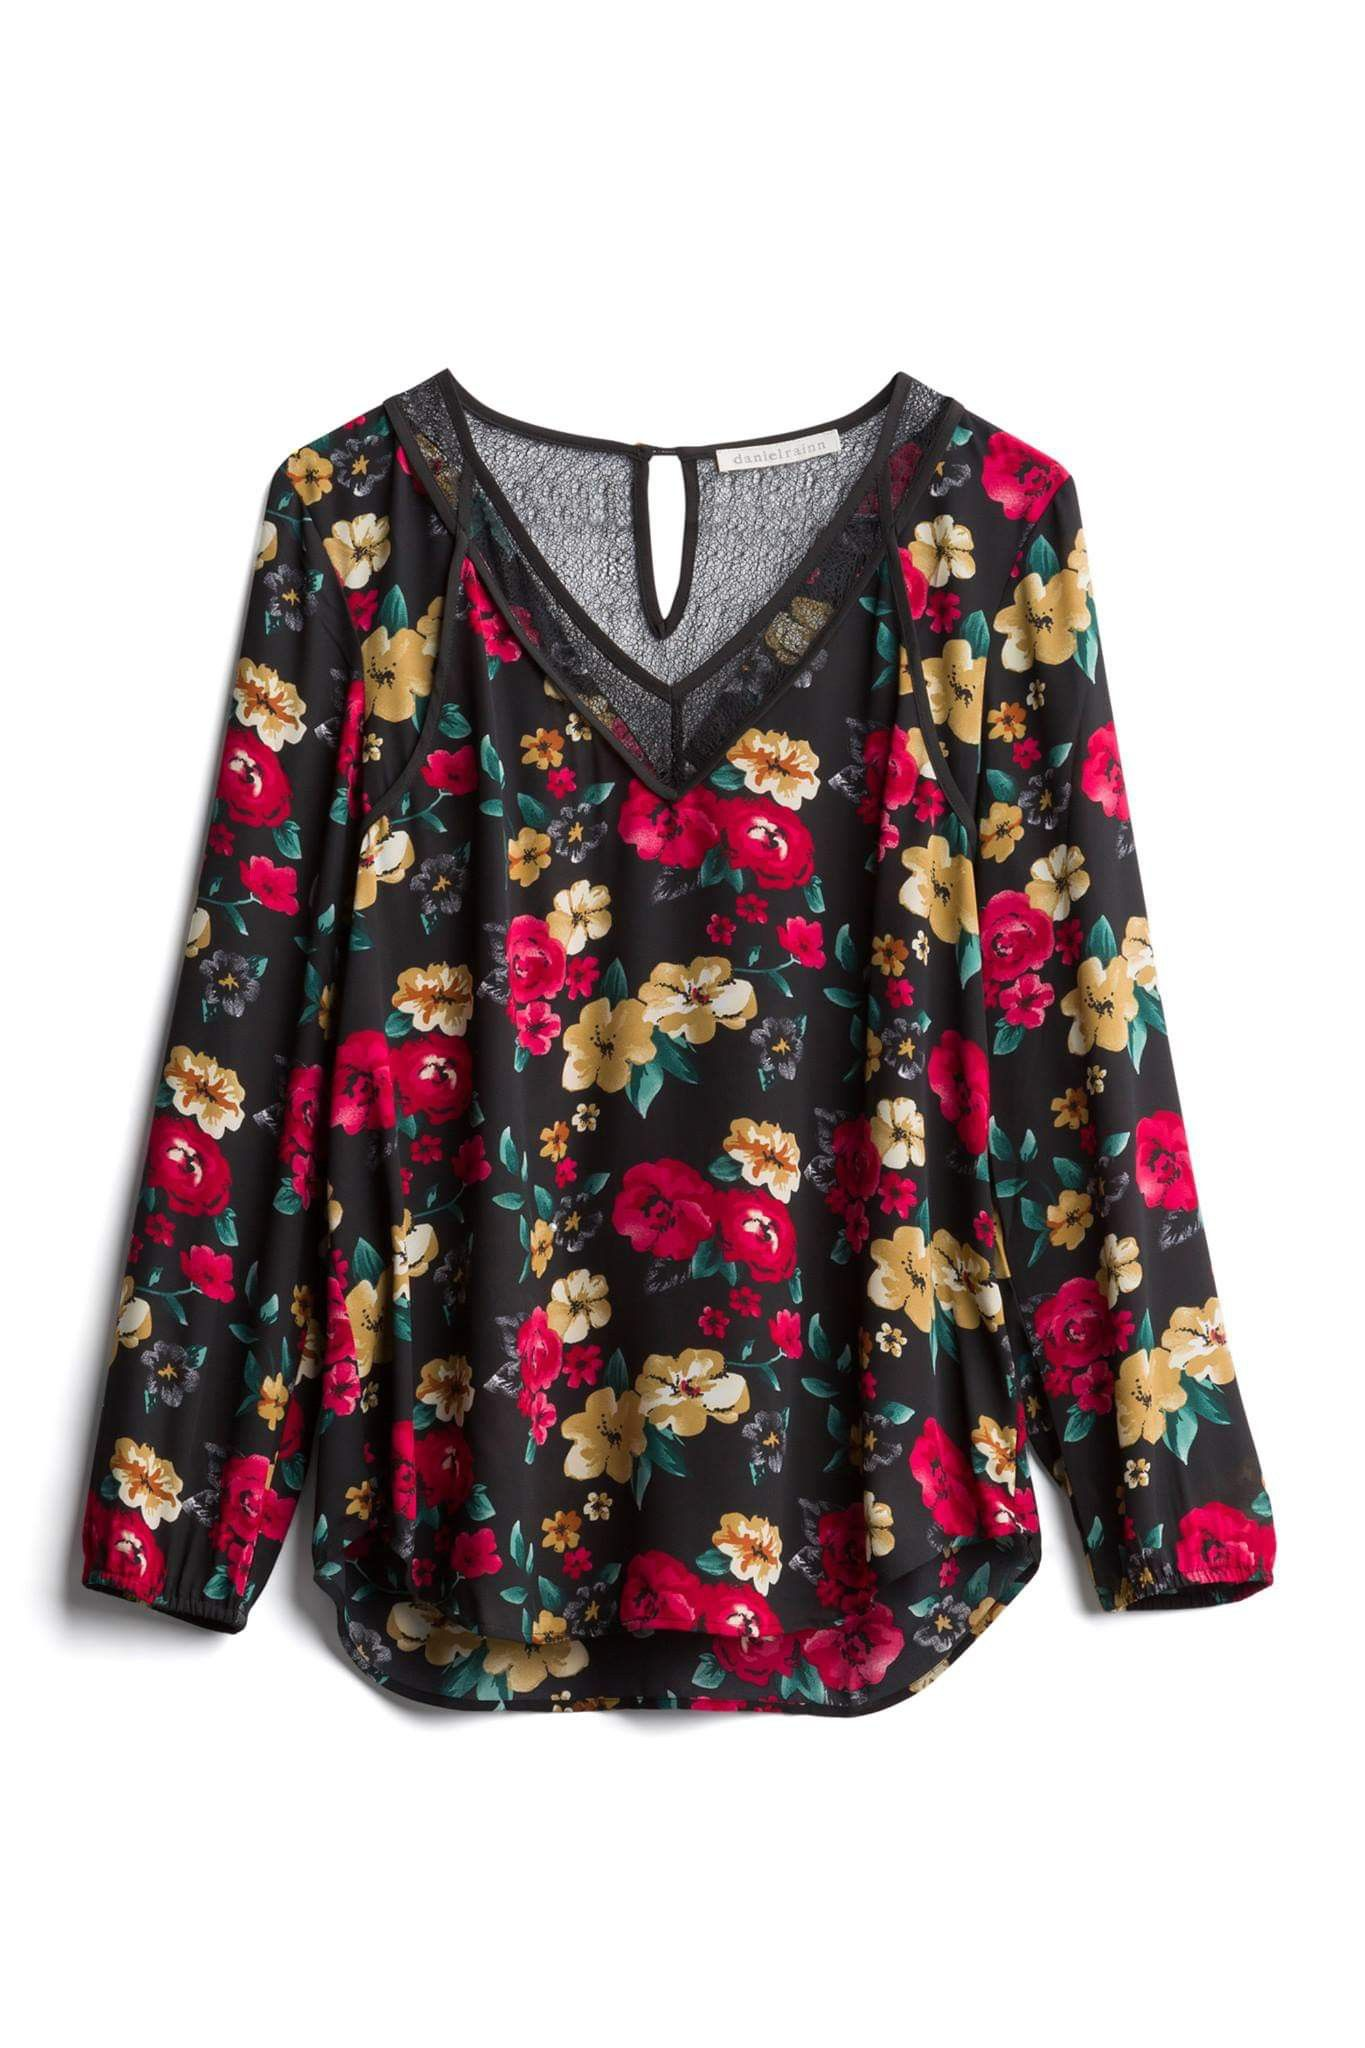 2018 Embroidery Long Sleeve Women Blouses Lattice Shirts Female Ladies Tops Casual Shirt Tops Loose Blusas Camisas Mujer P273 Women's Clothing